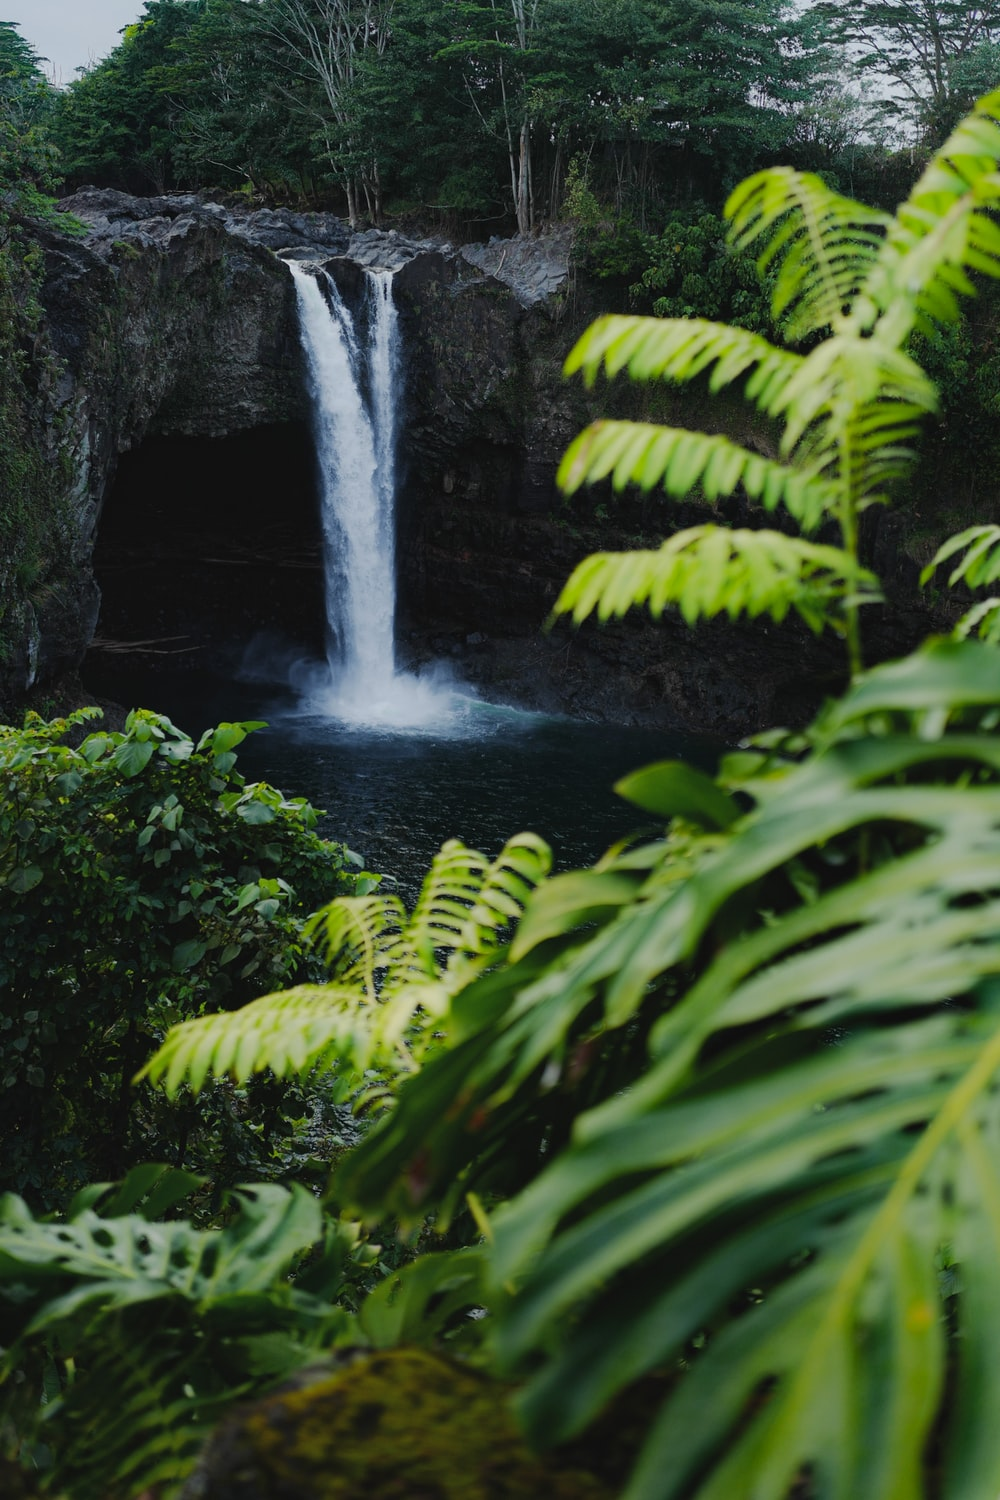 waterfalls in the middle of green moss covered rocks